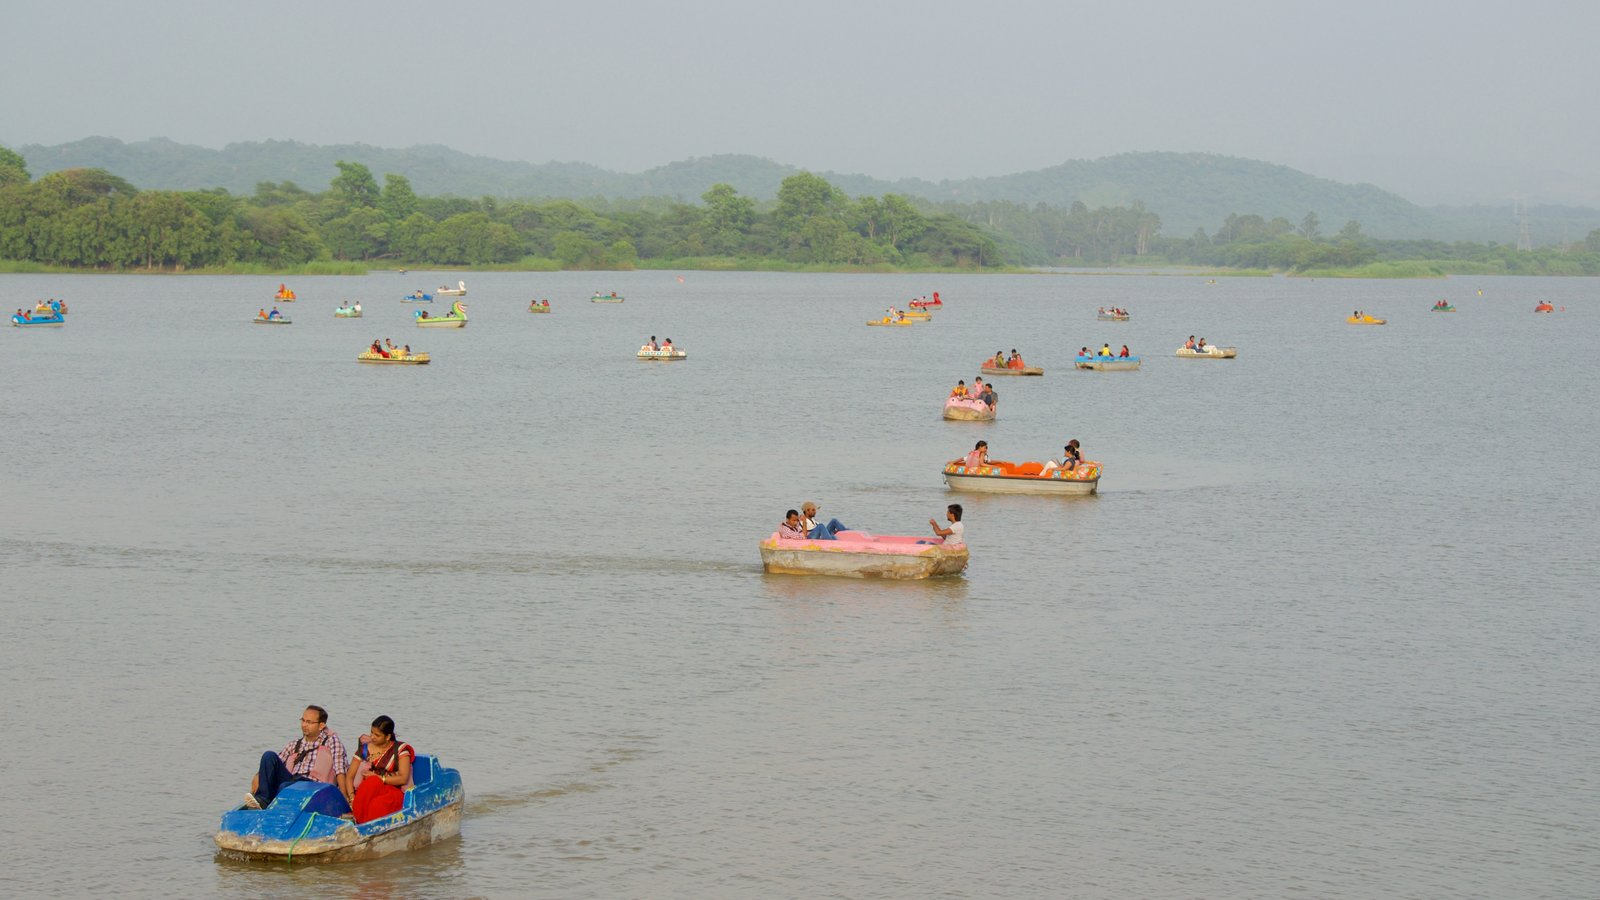 Sukhna Lake showing a lake or waterhole and kayaking or canoeing as well as a small group of people